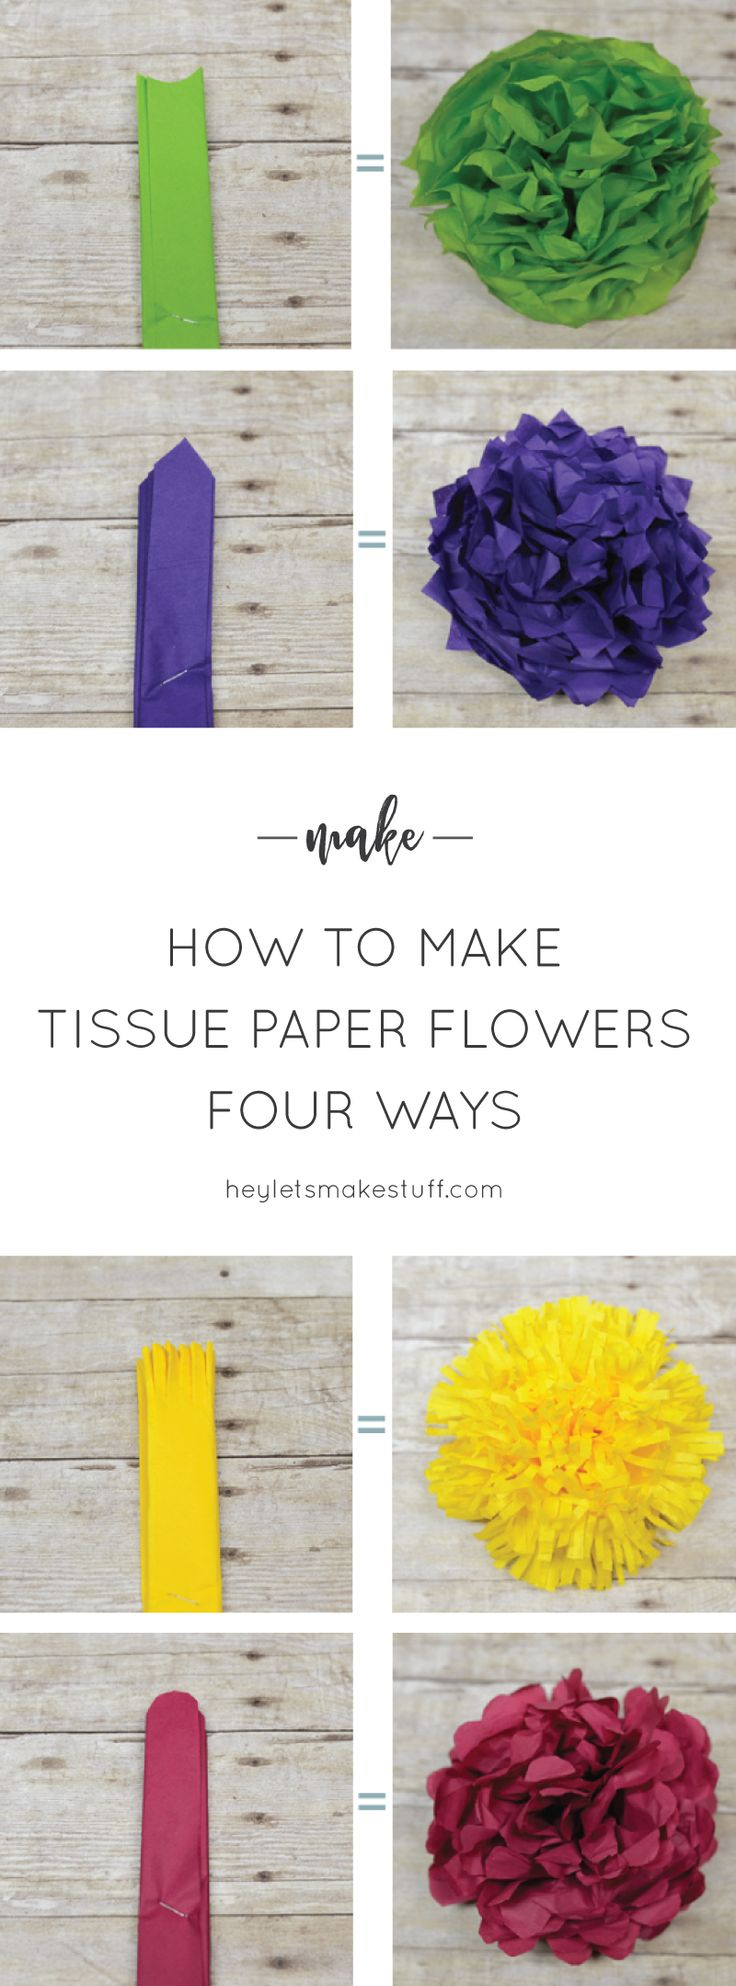 How to make tissue paper flowers four ways wedding centerpieces how to make tissue paper flowers four ways wedding centerpieces tissue paper and centerpieces izmirmasajfo Images